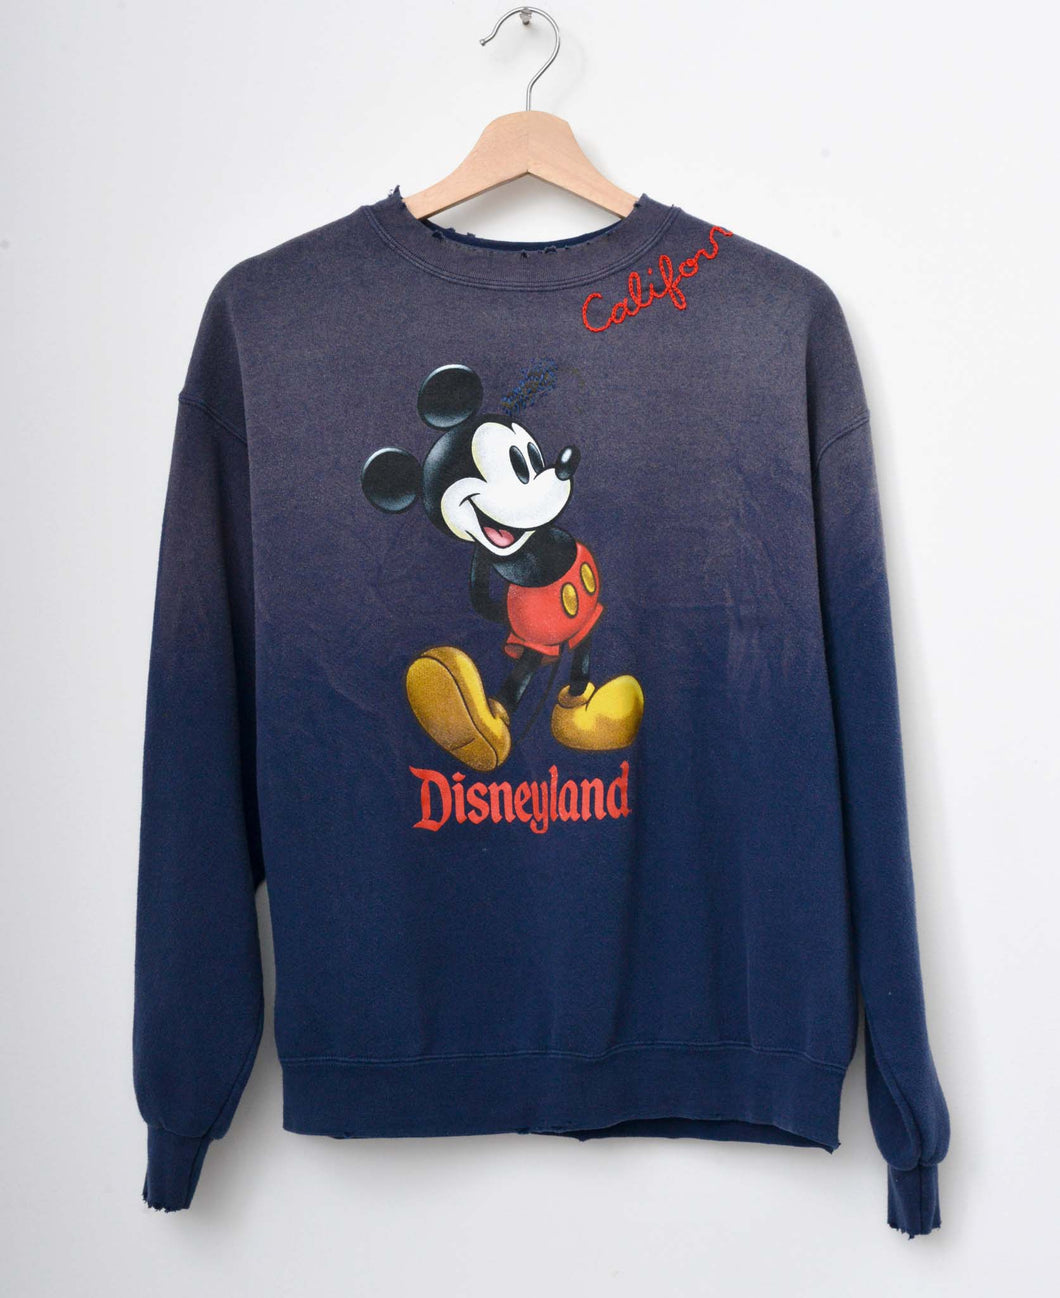 Vintage Mickey & California Embroidery Sweatshirt - Navy